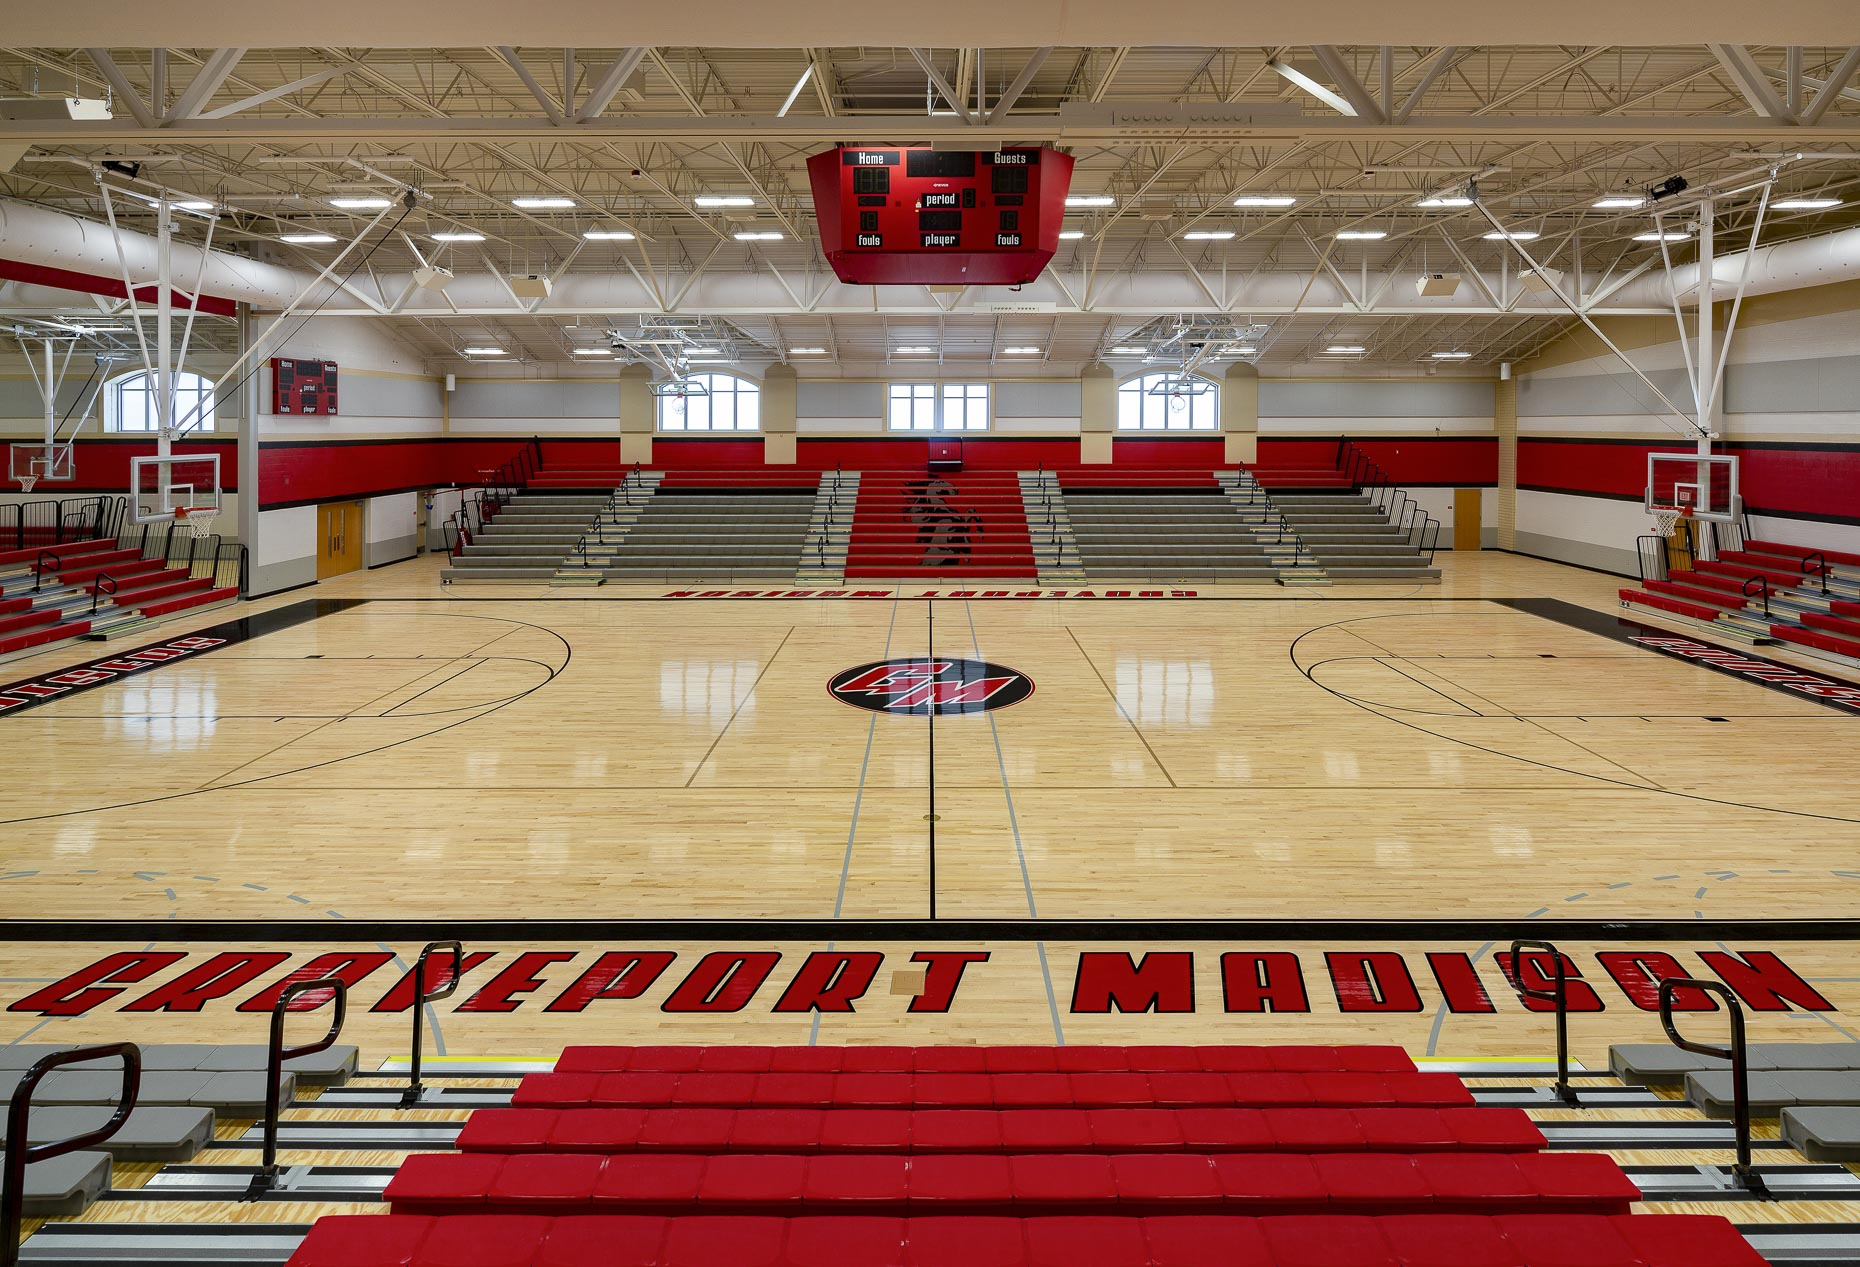 Groveport Madison High School by VSWC & Smoot Construction photographed by Lauren K Davis based in Columbus, Ohio